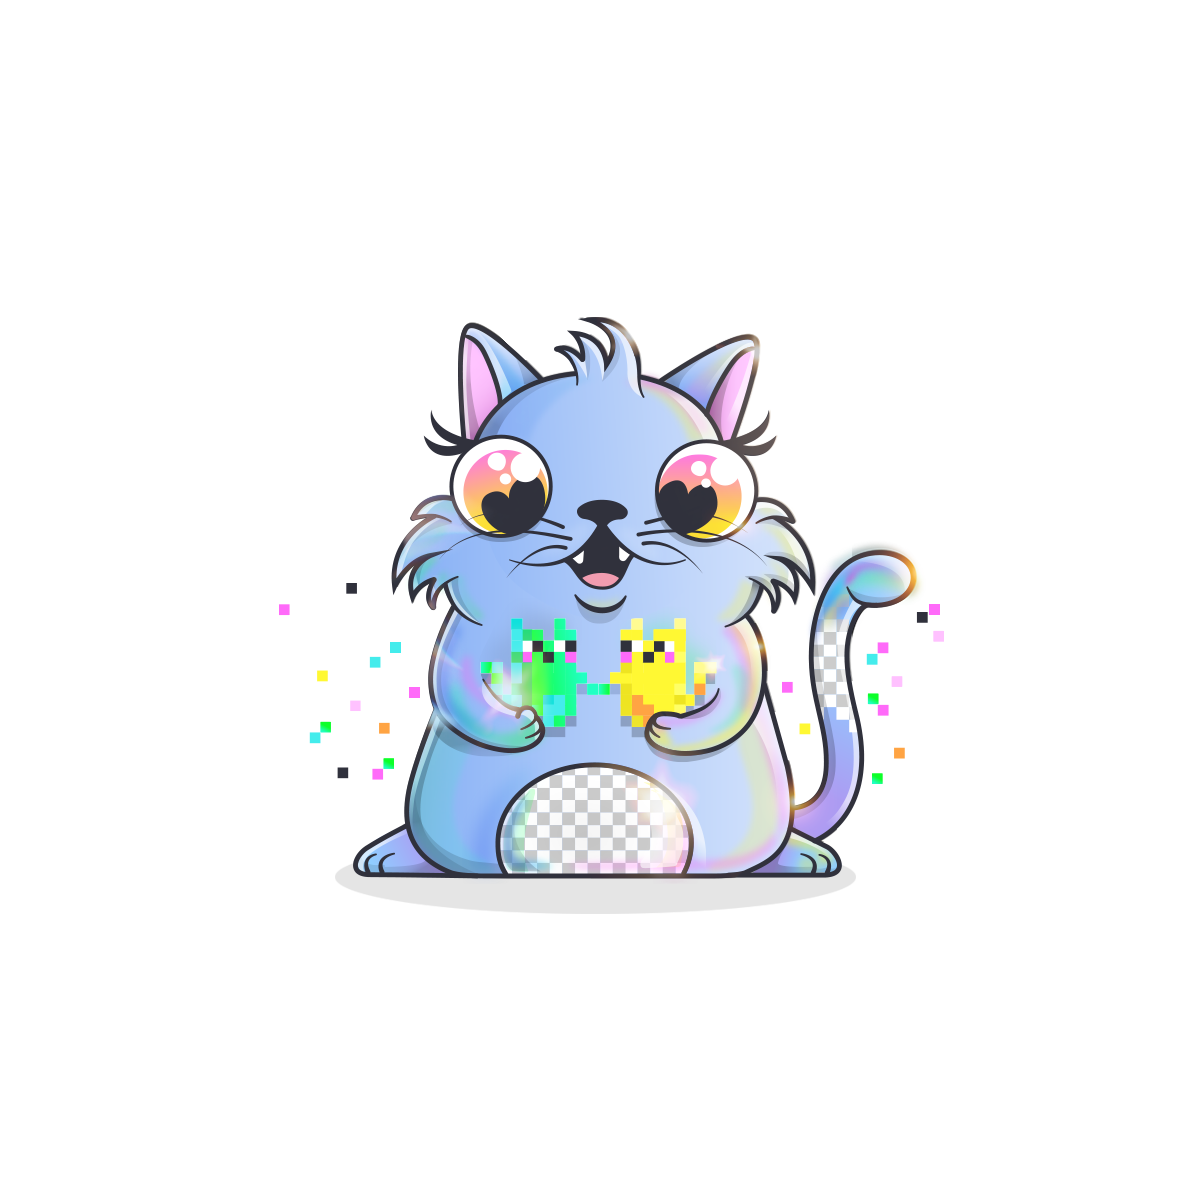 Buy Sell Cryptokitties Sheila Purren Skins Items Opskins Squishy Circuits Cherry Lake Publishing Steam Image